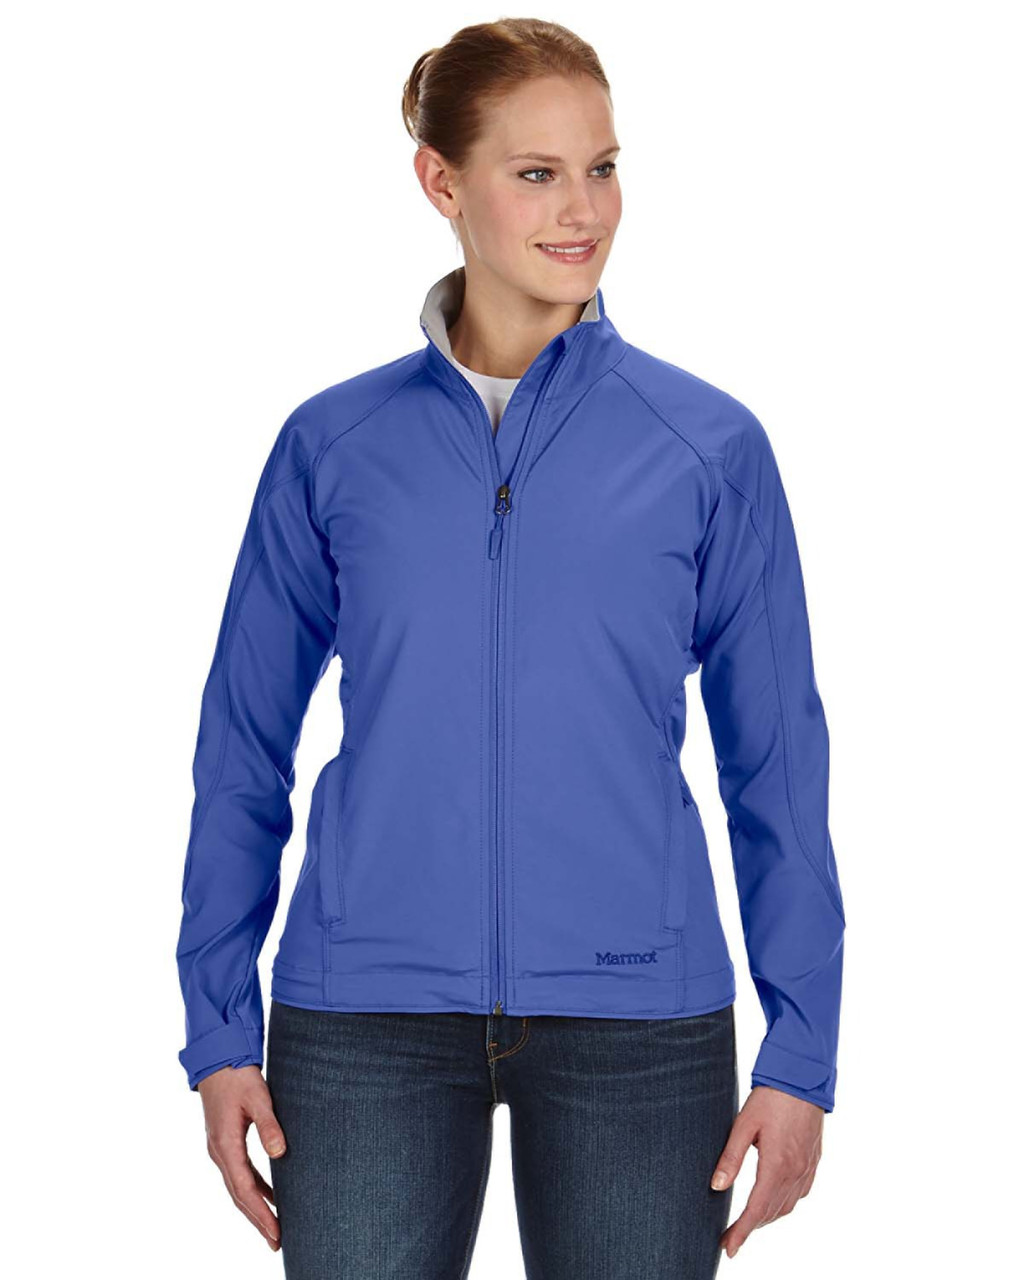 Brill Blue - 8587 Marmot Ladies' Levity Jacket | BlankClothing.ca